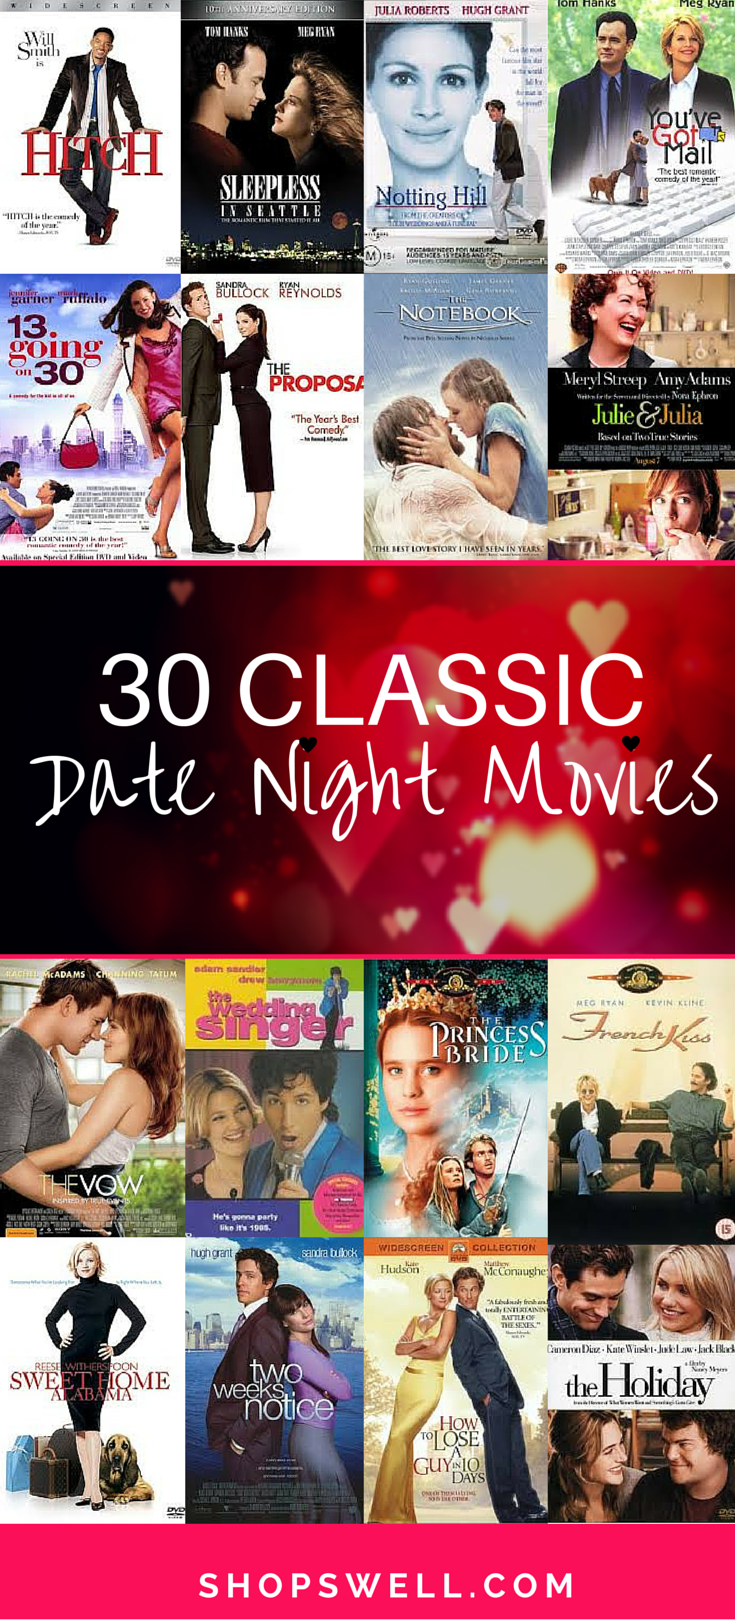 Good movies to see on a date